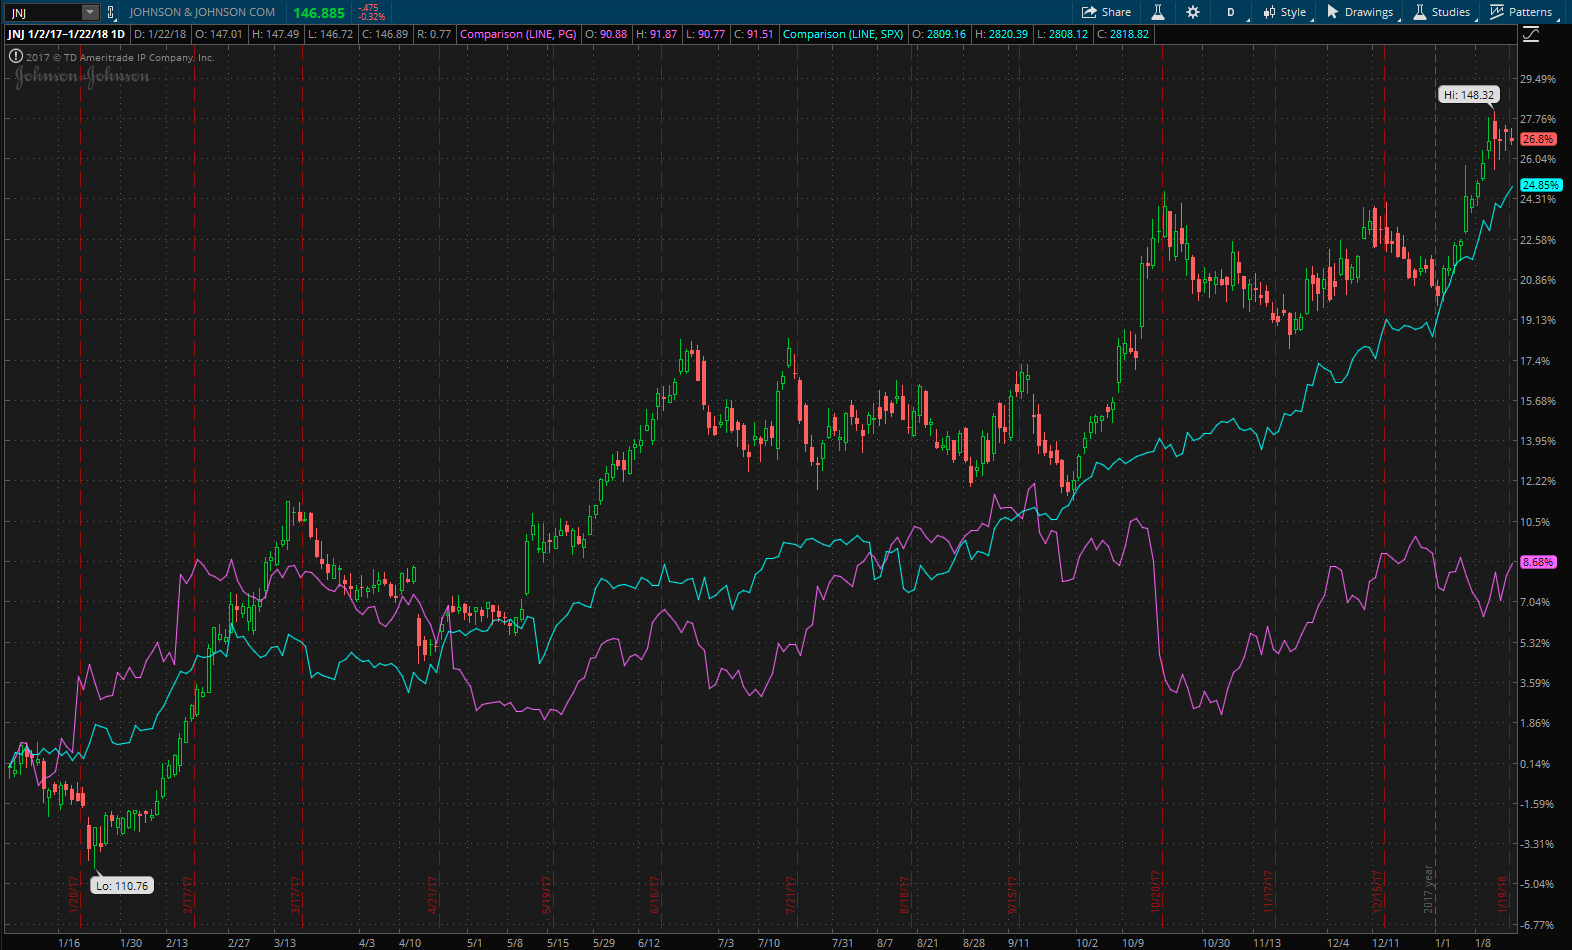 Stock chart showing the performance of Procter & Gamble (PG) and Johnson & Johnson (JNJ) since 2017